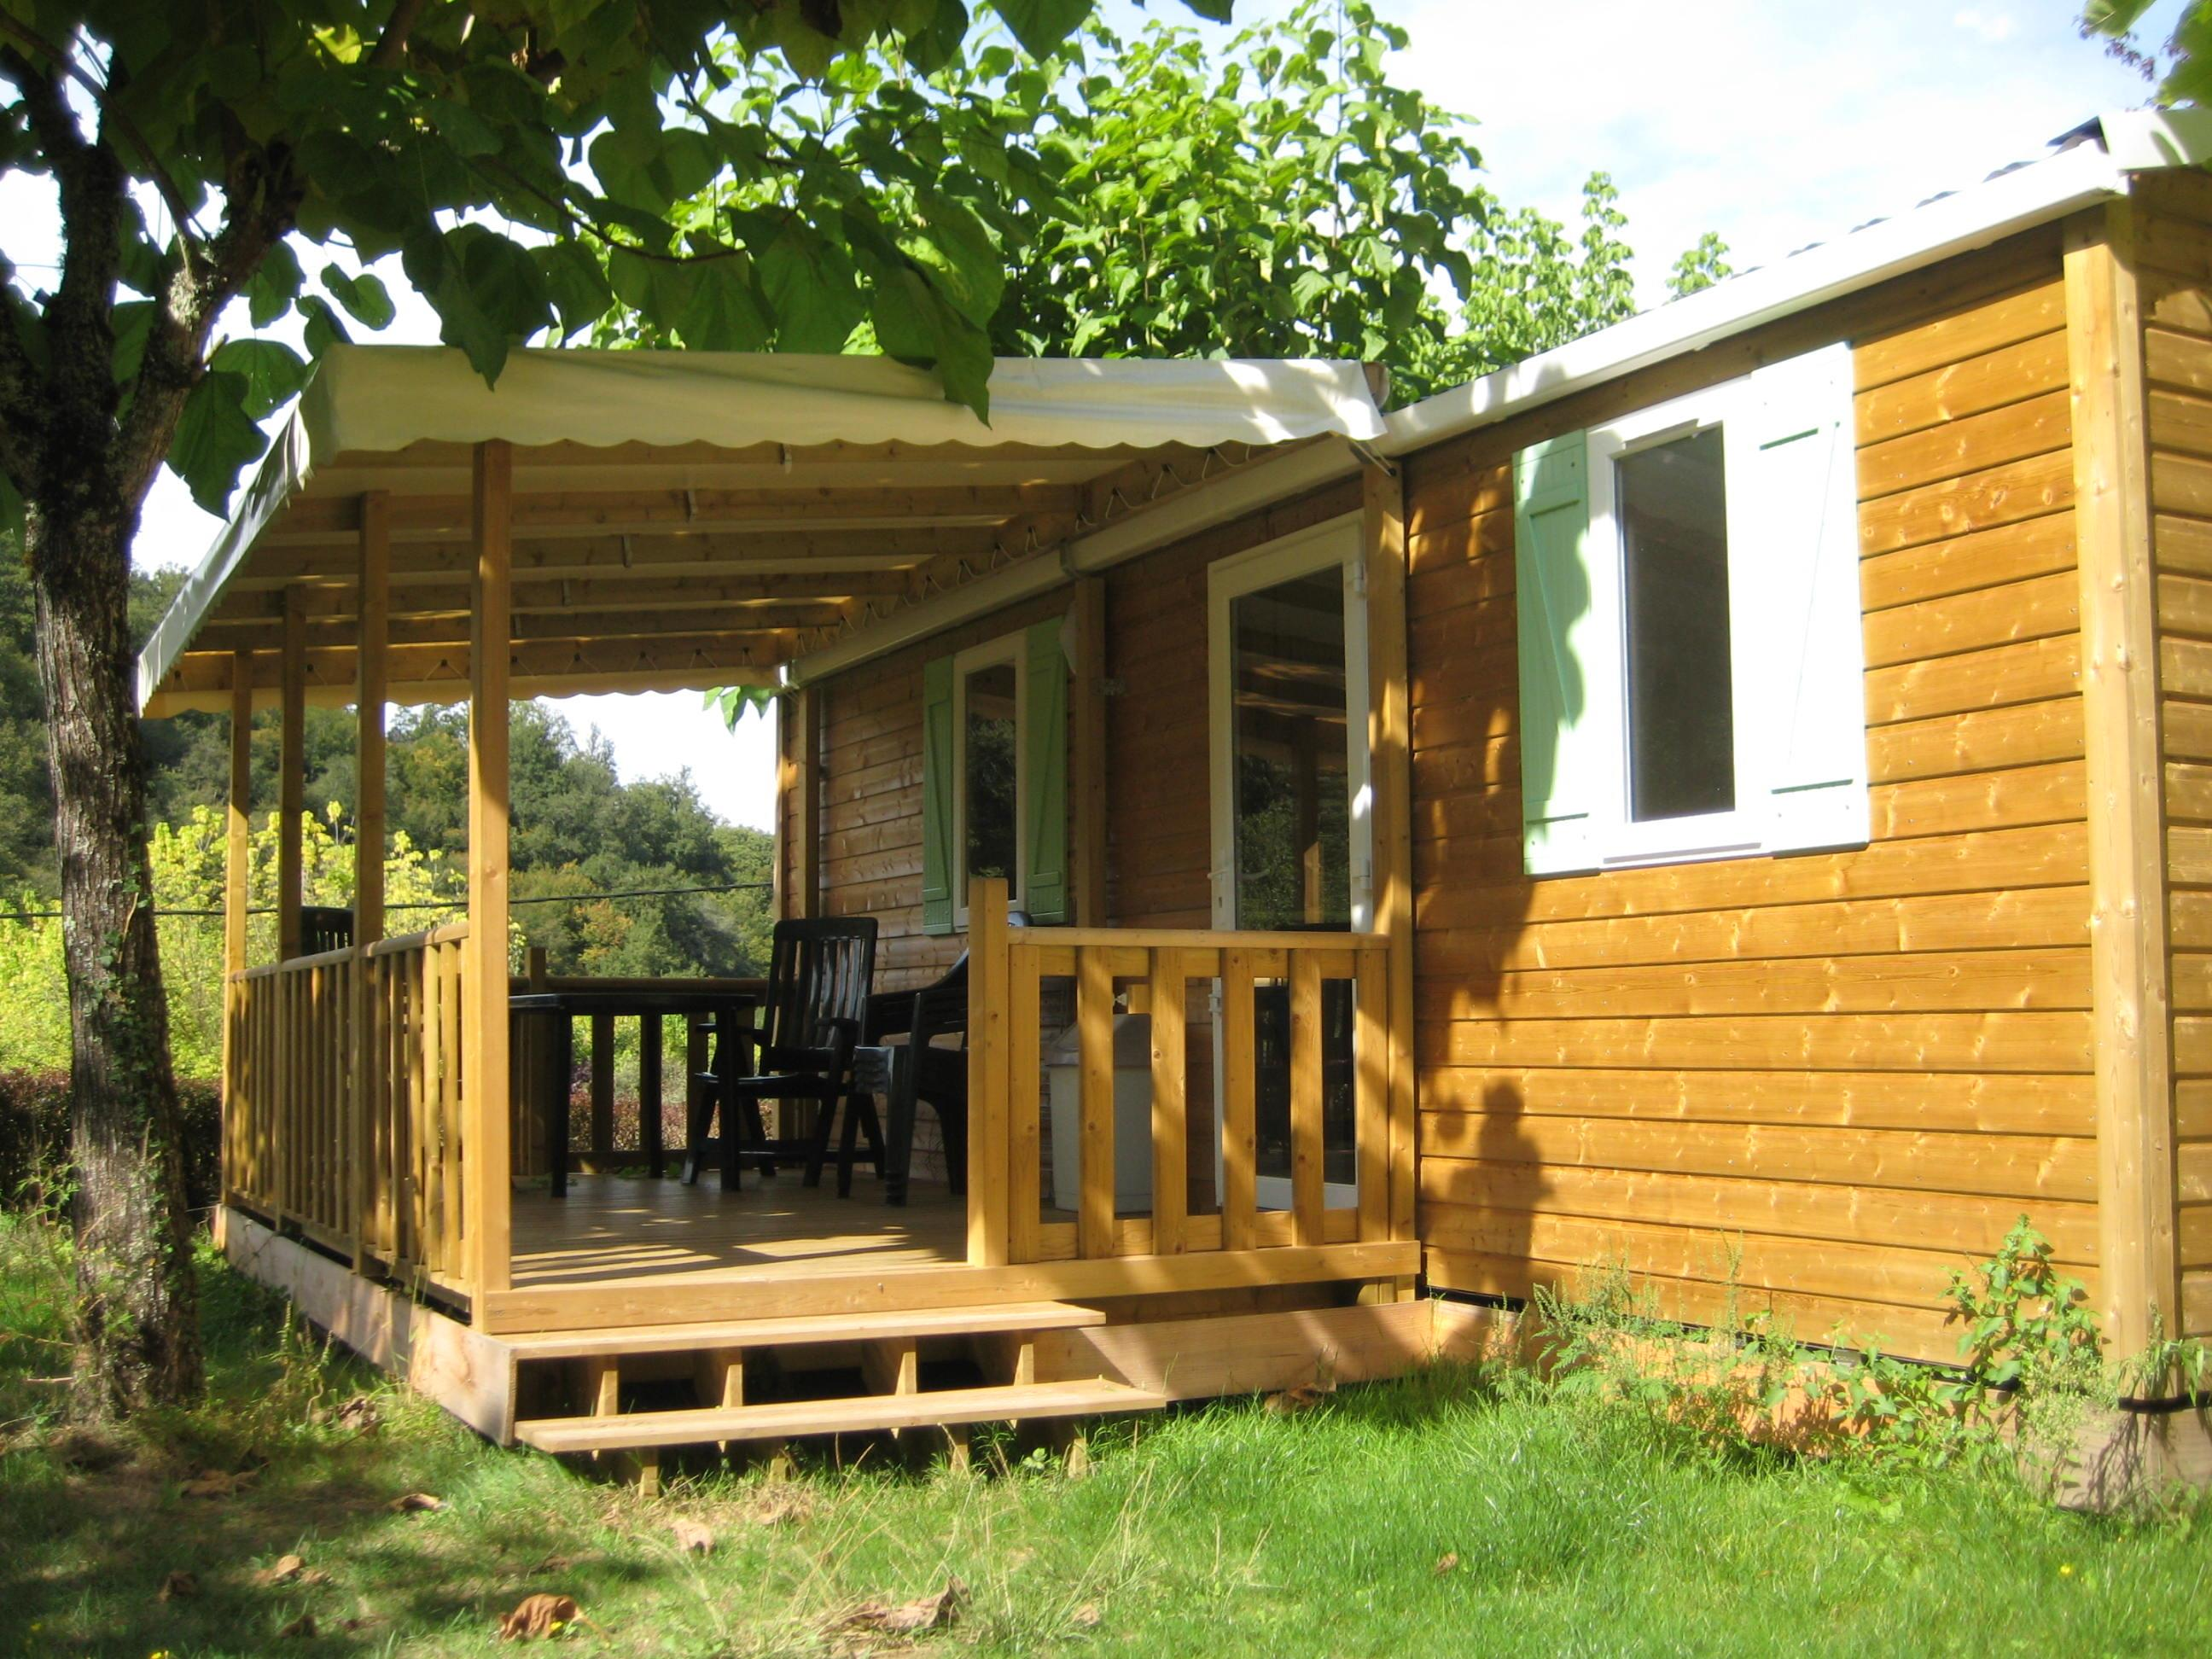 Accommodation - Mobil Home Super Mercure  30M² - 2 Bedrooms With A Covered  Terrace - Camping La Chatonnière